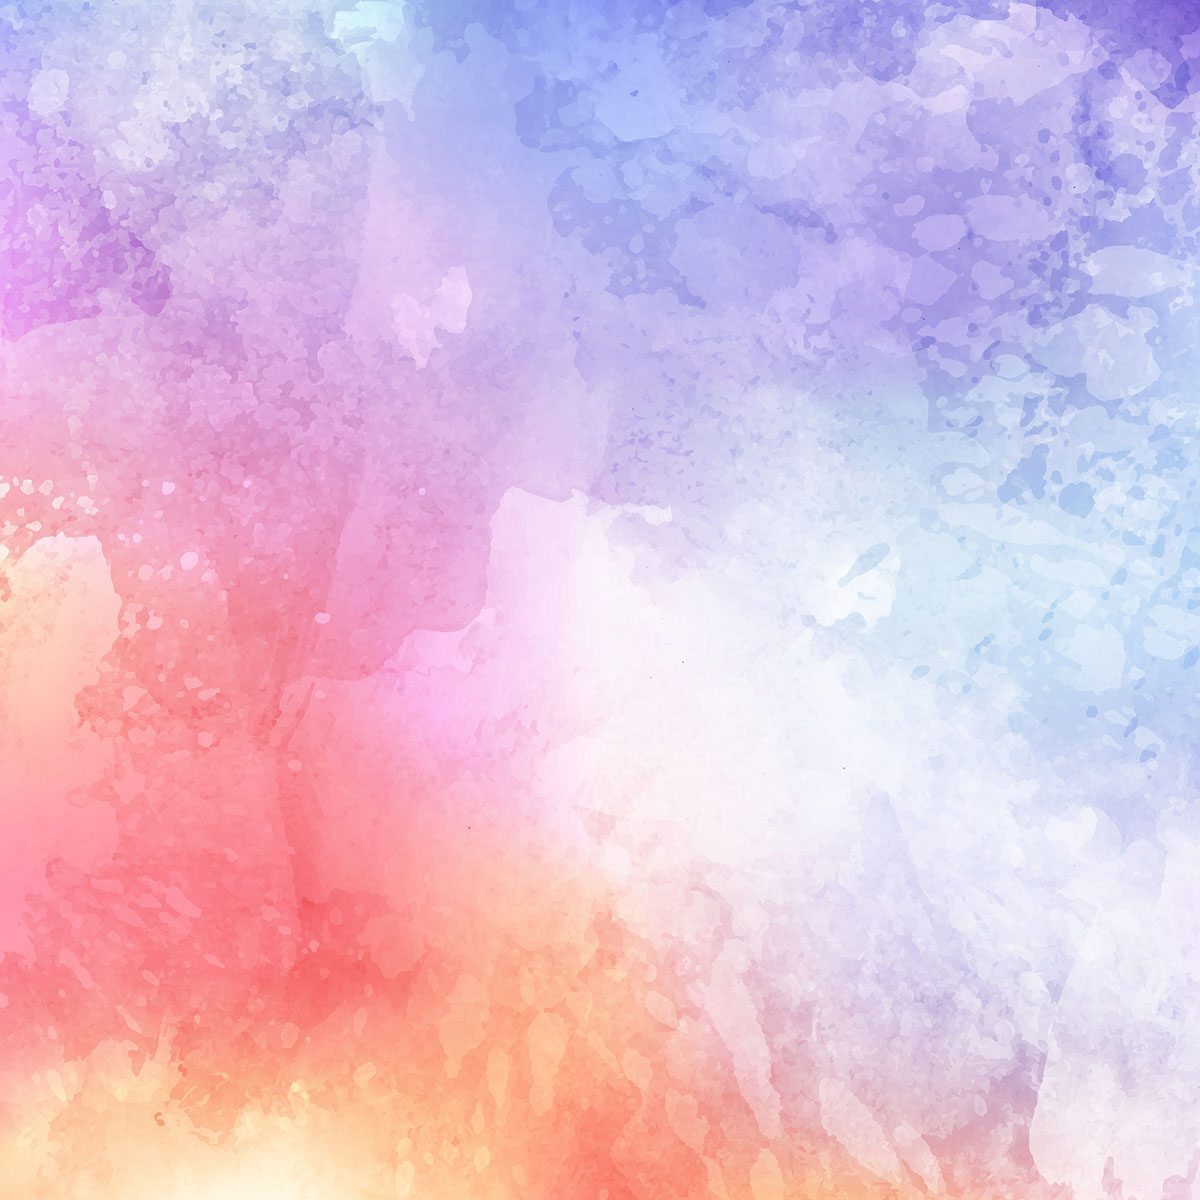 Watercolour texture - Download Free Vector Art, Stock ...